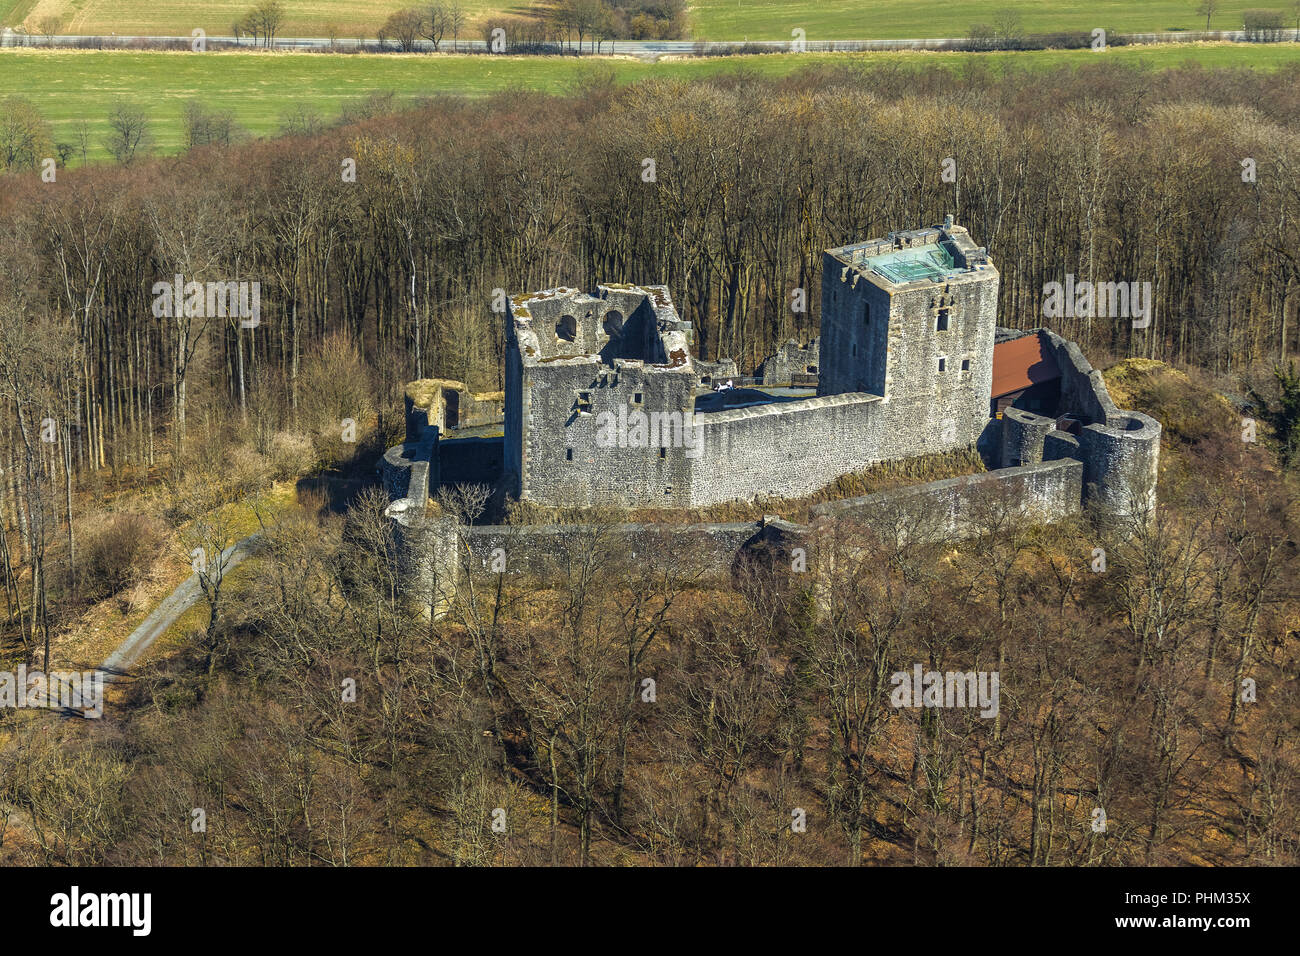 Weidelsburg is the ruin of a mountain castle near Ippinghausen in Wolfhagen, nature parks Habichtswald, Ippinghausen in the district Kassel, Hessen, G Stock Photo